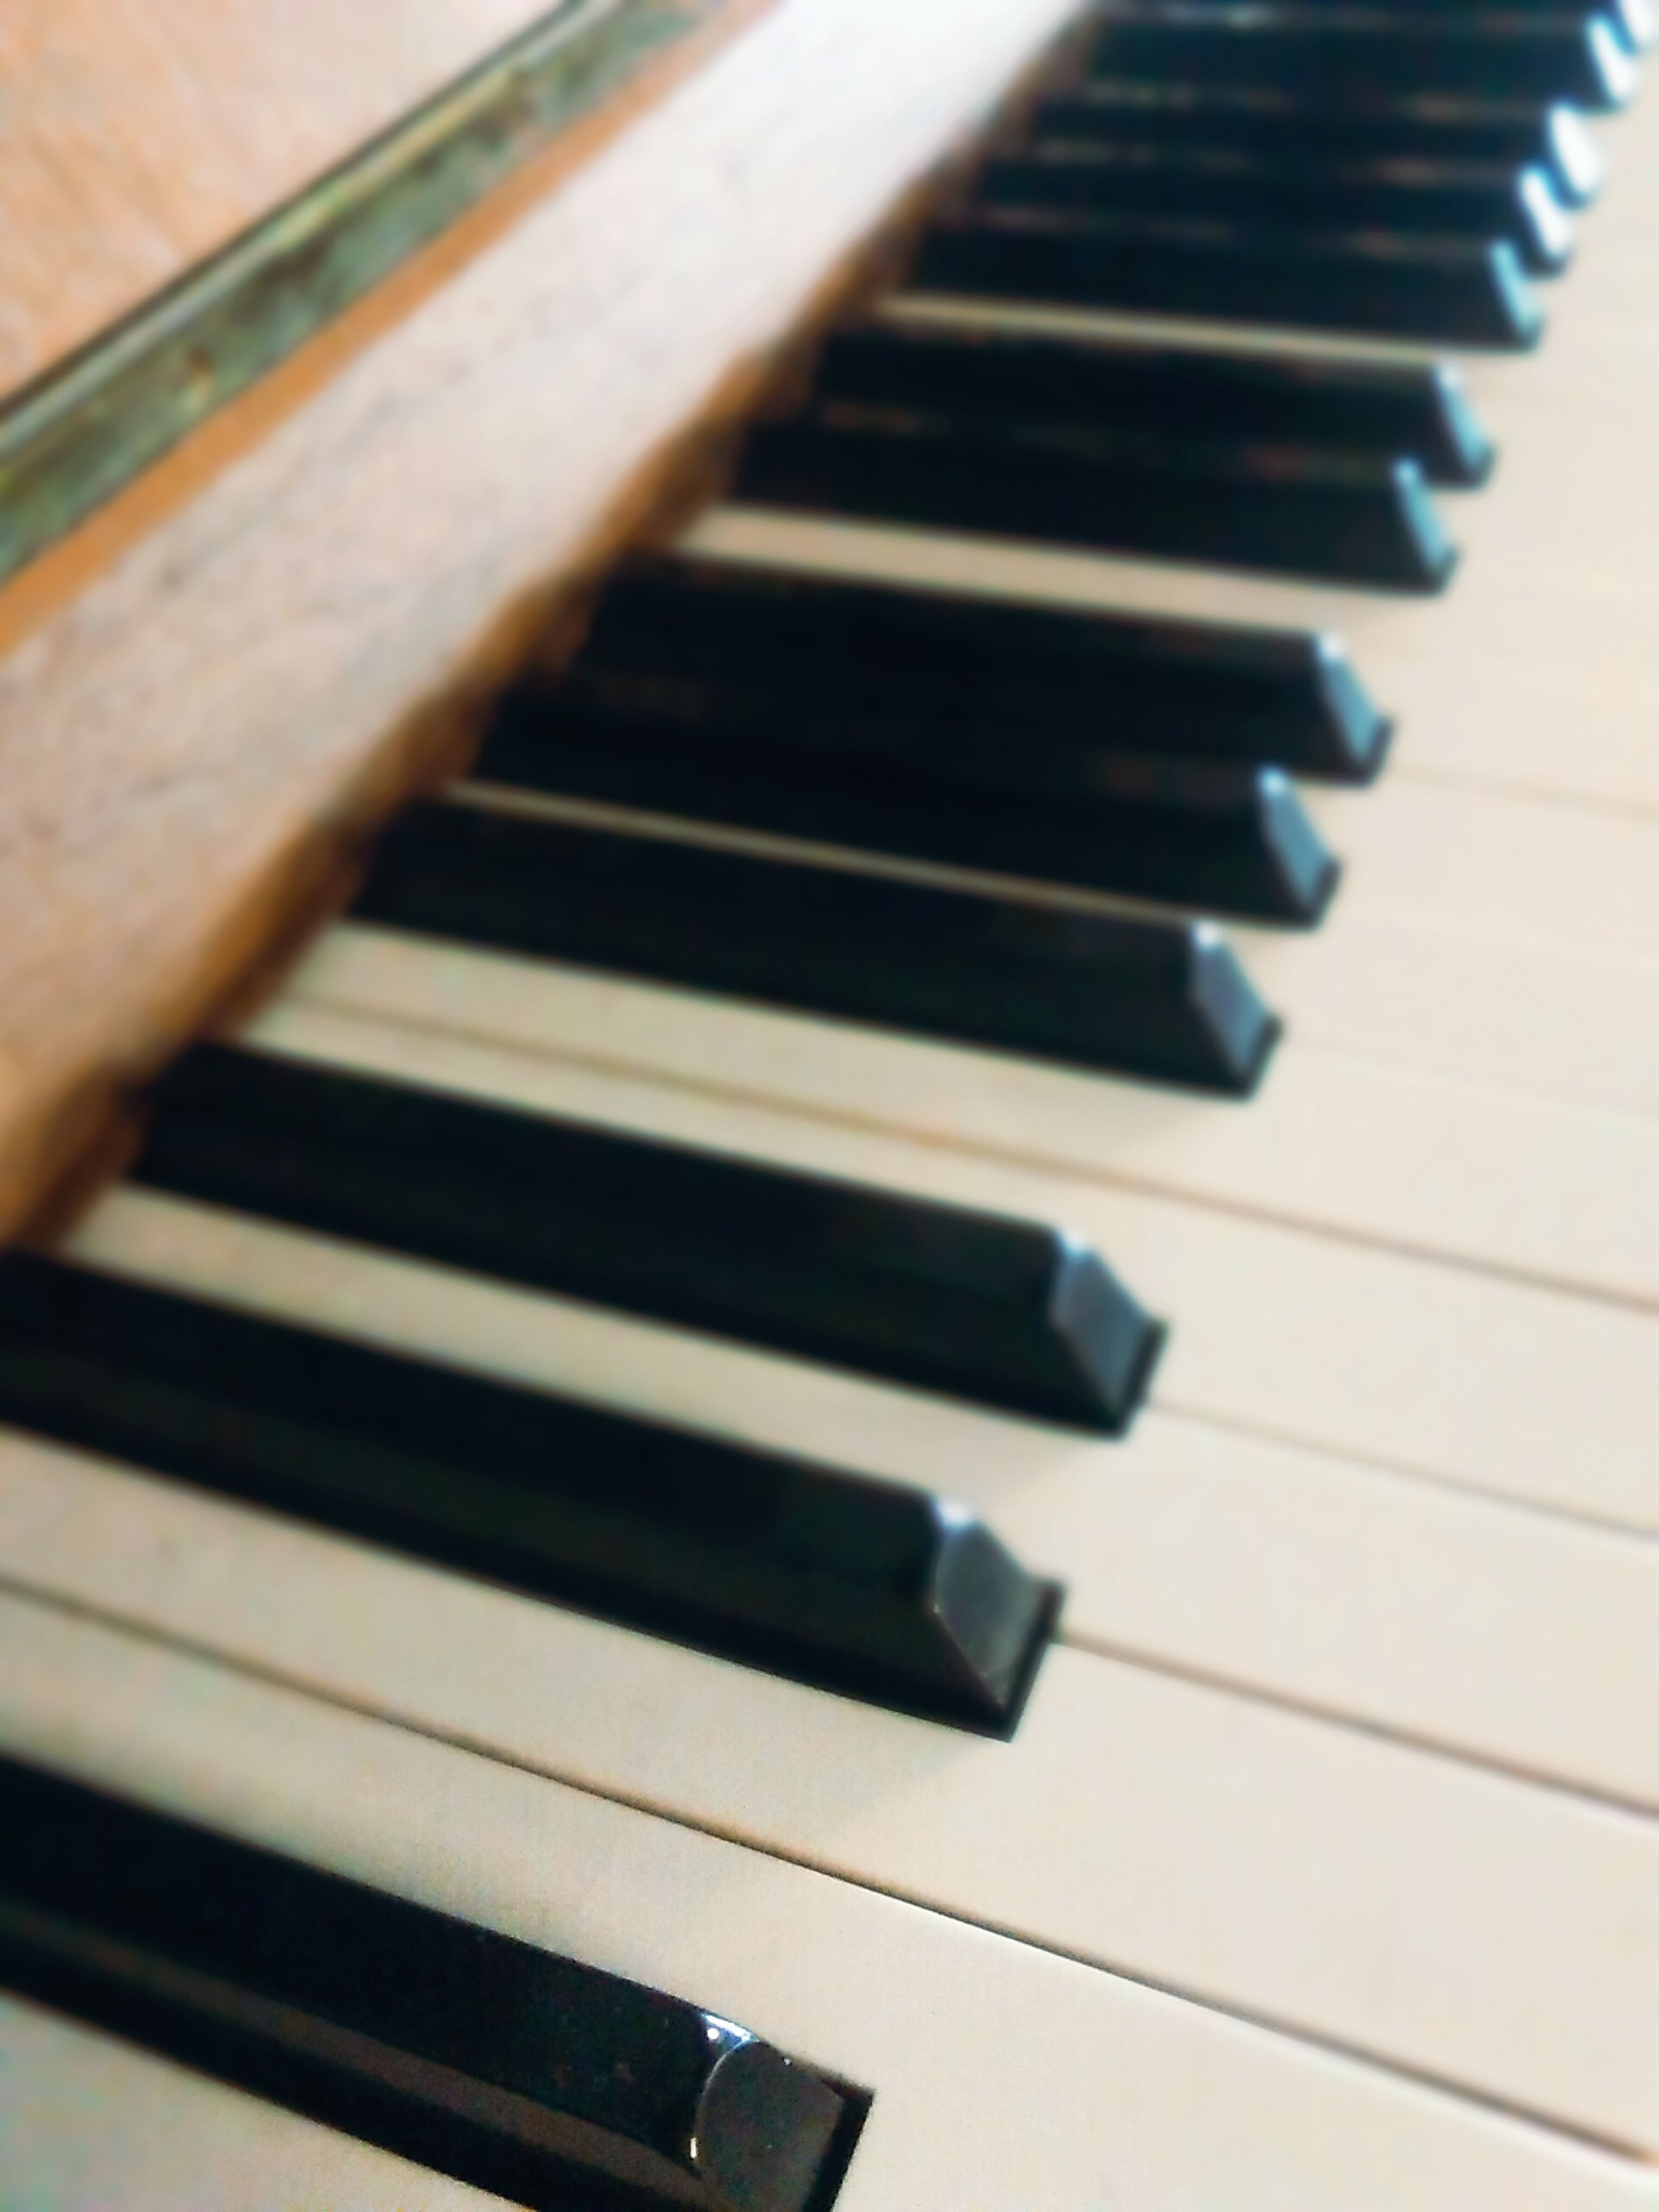 musical instrument, music, piano key, piano, arts culture and entertainment, close-up, no people, indoors, musical equipment, day